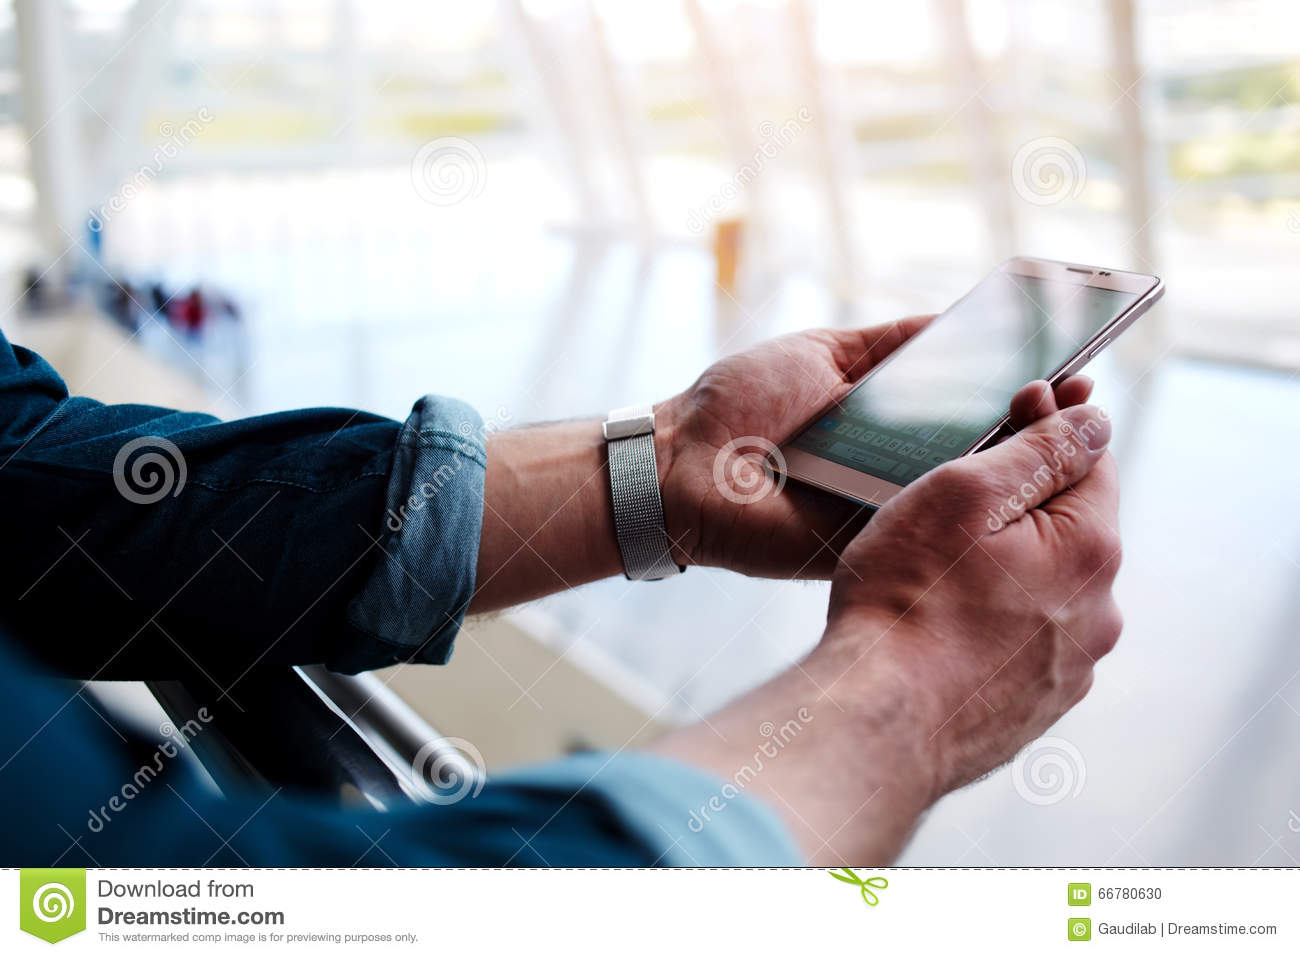 Young Male Connecting To Wireless Via Mobile Phone While Waiting For